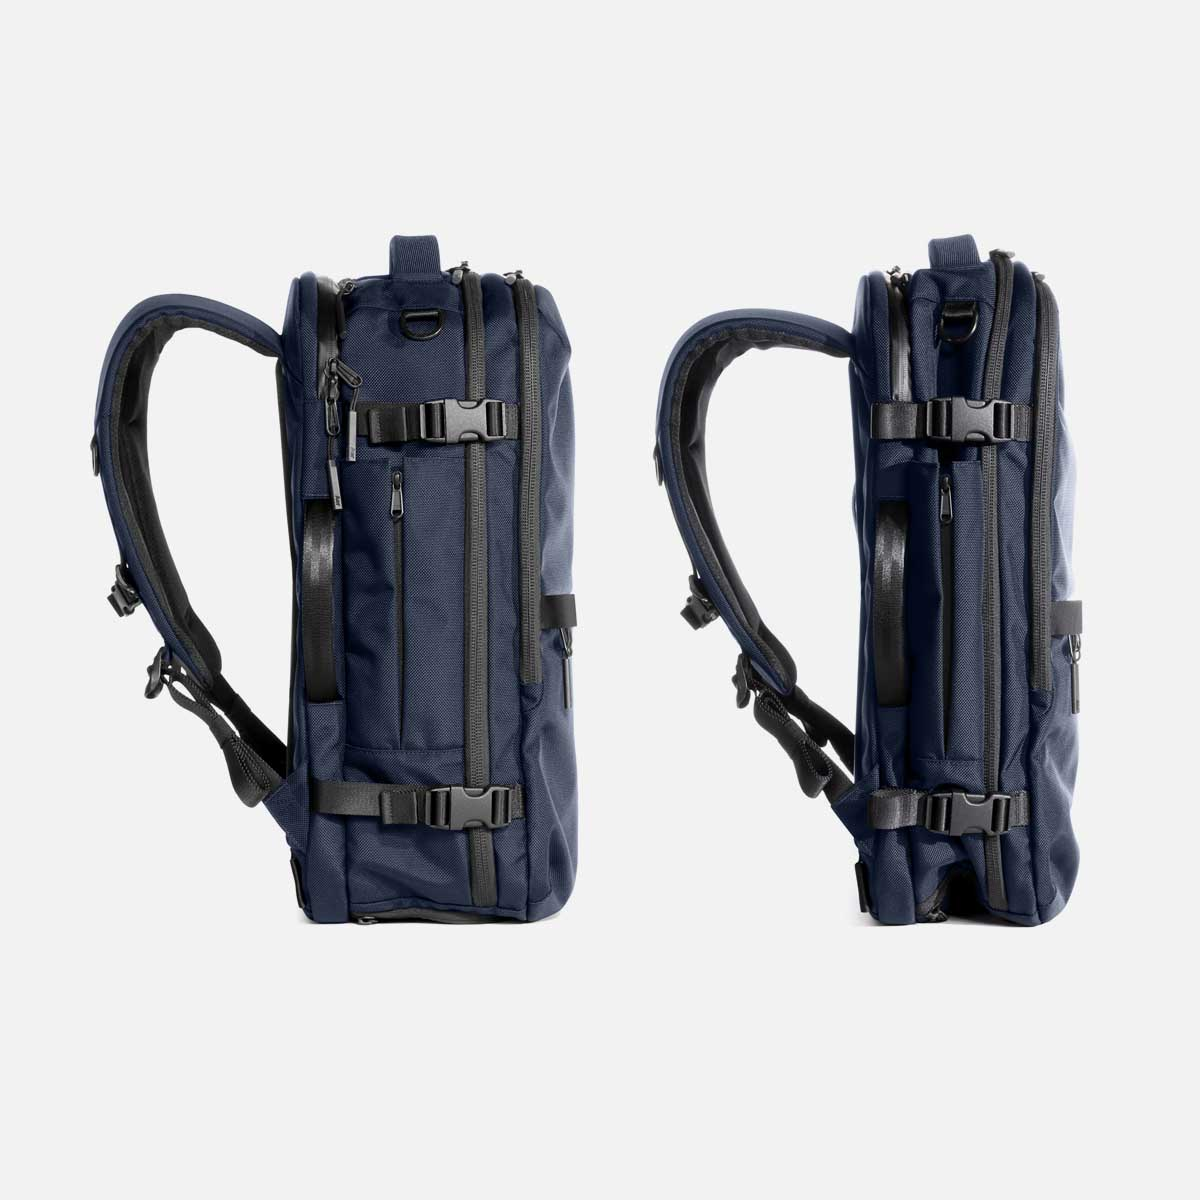 Go from a carry-on backpack to a daypack.